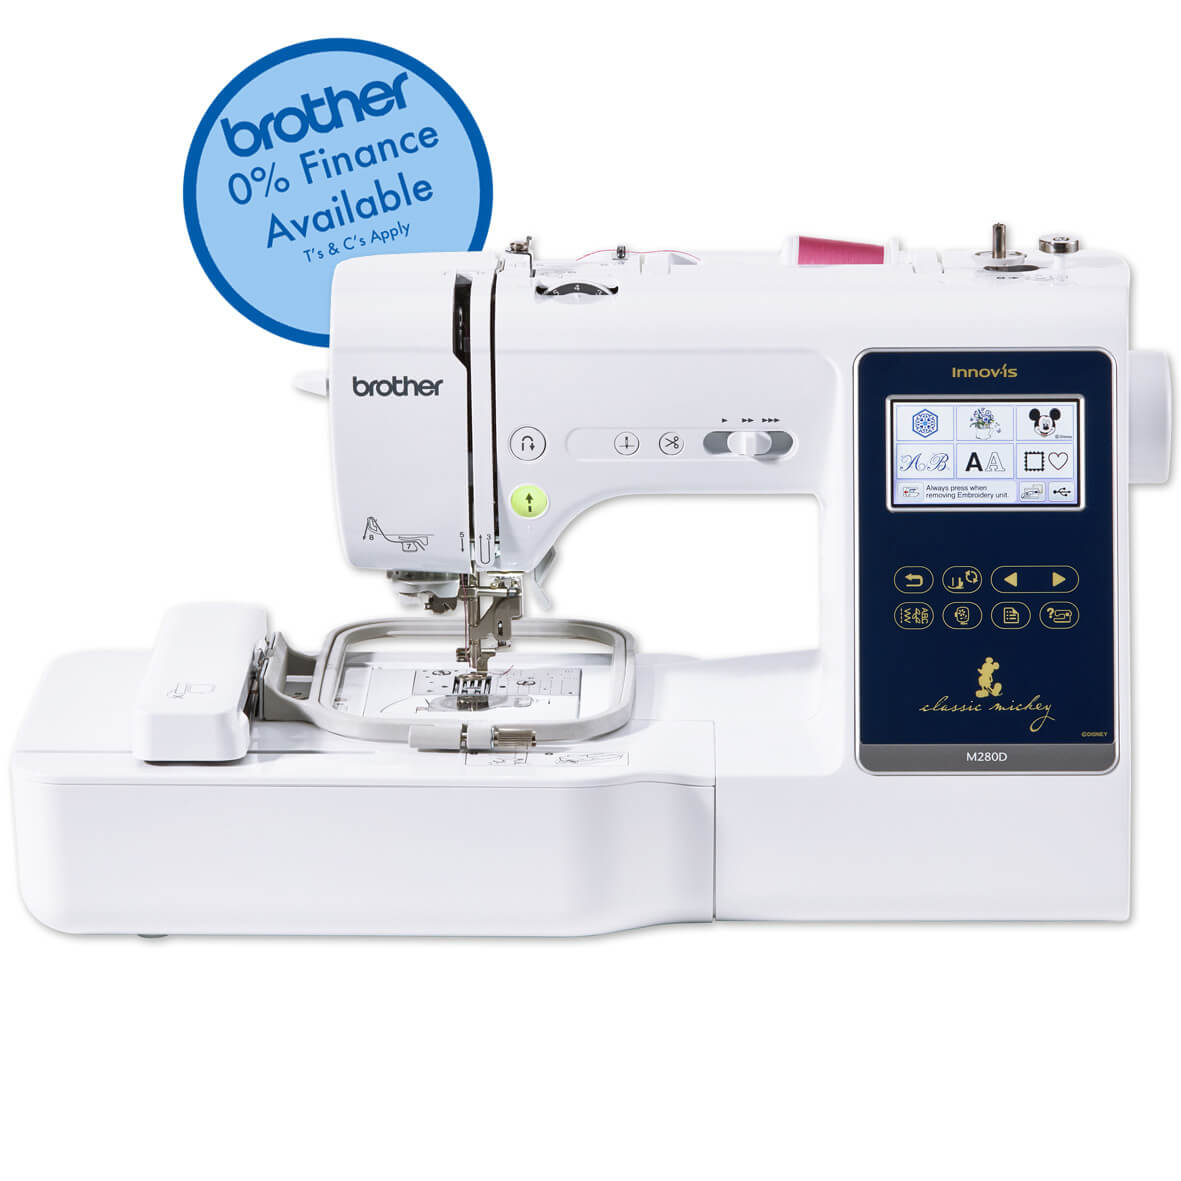 Brother-Innov-is-M280D-sewing-and0embroidery-01